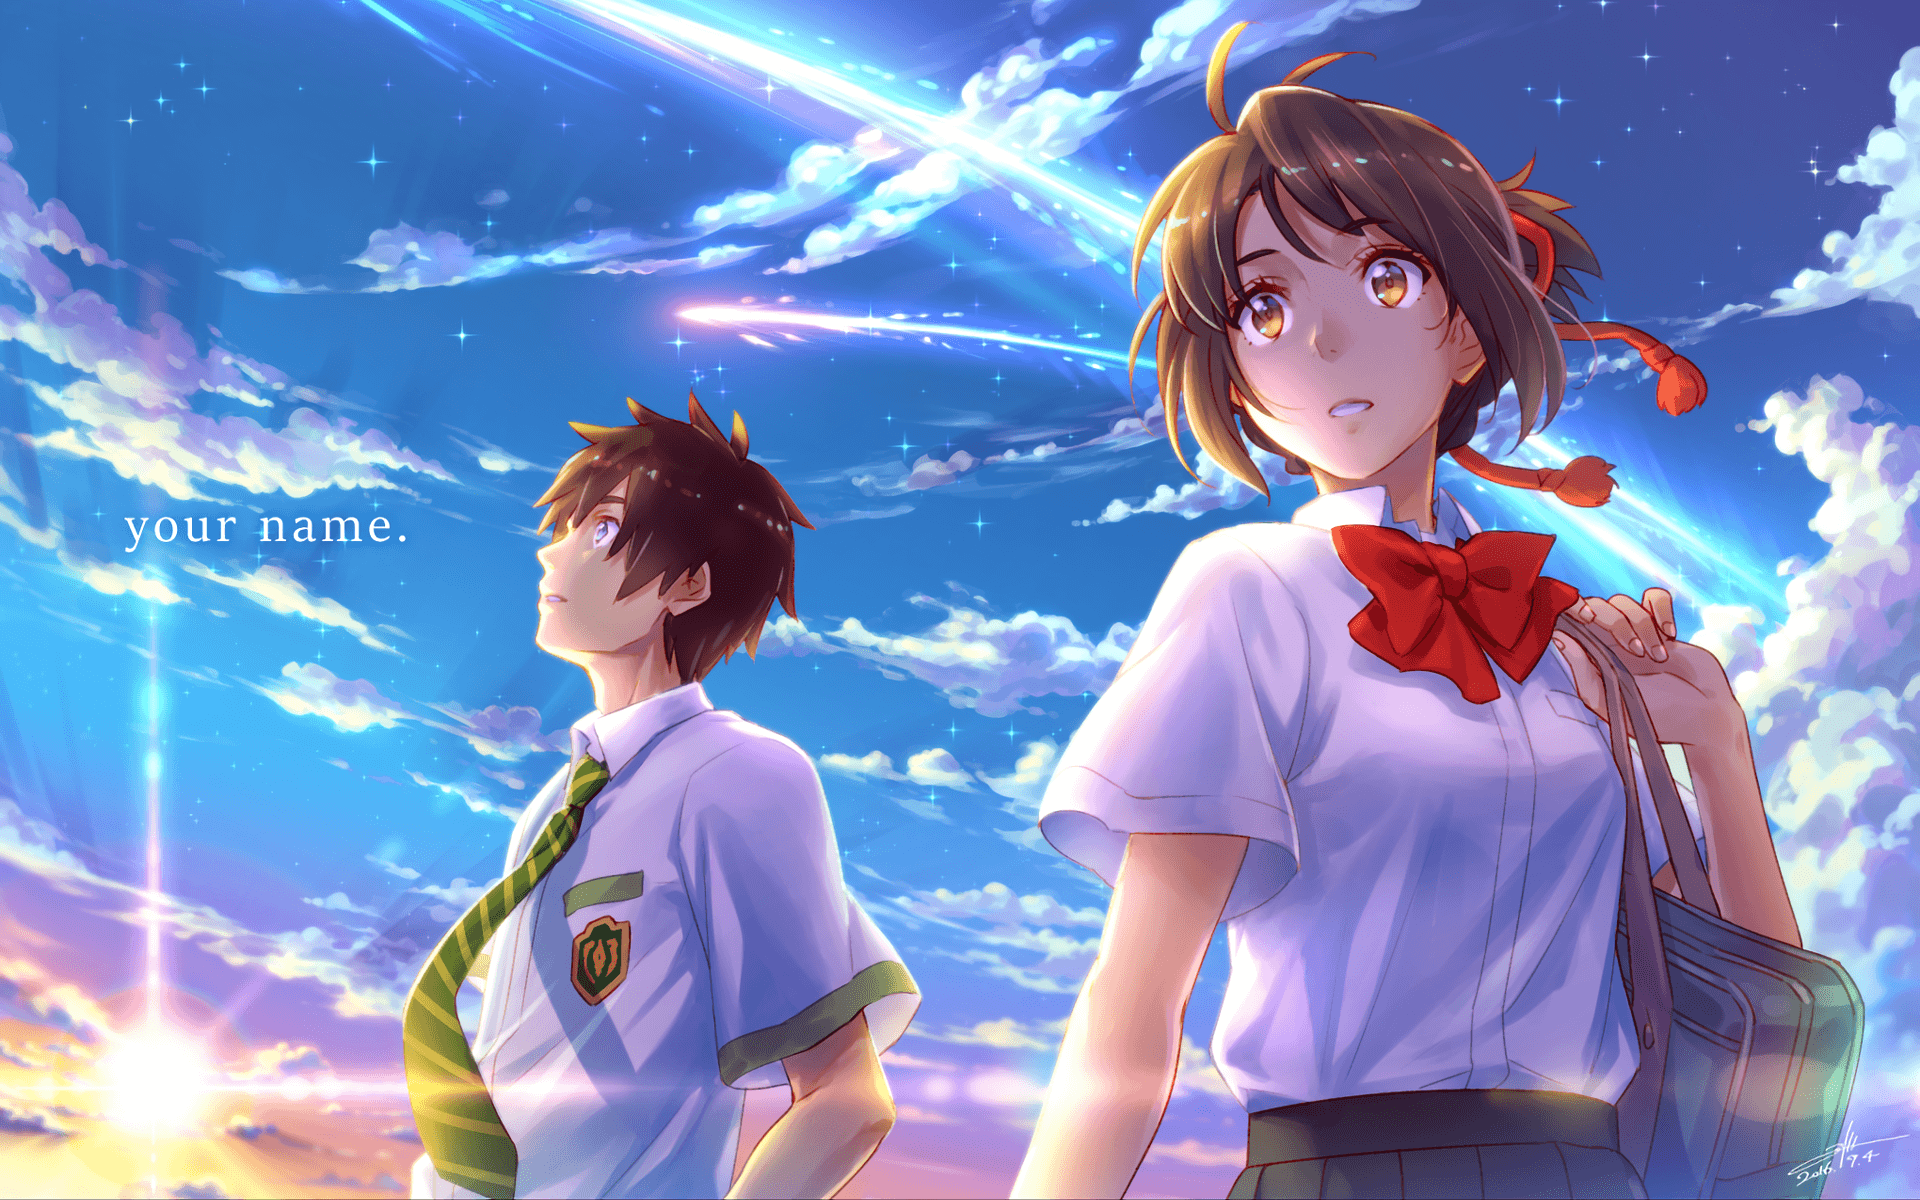 Your Name Anime 2016 Wallpapers